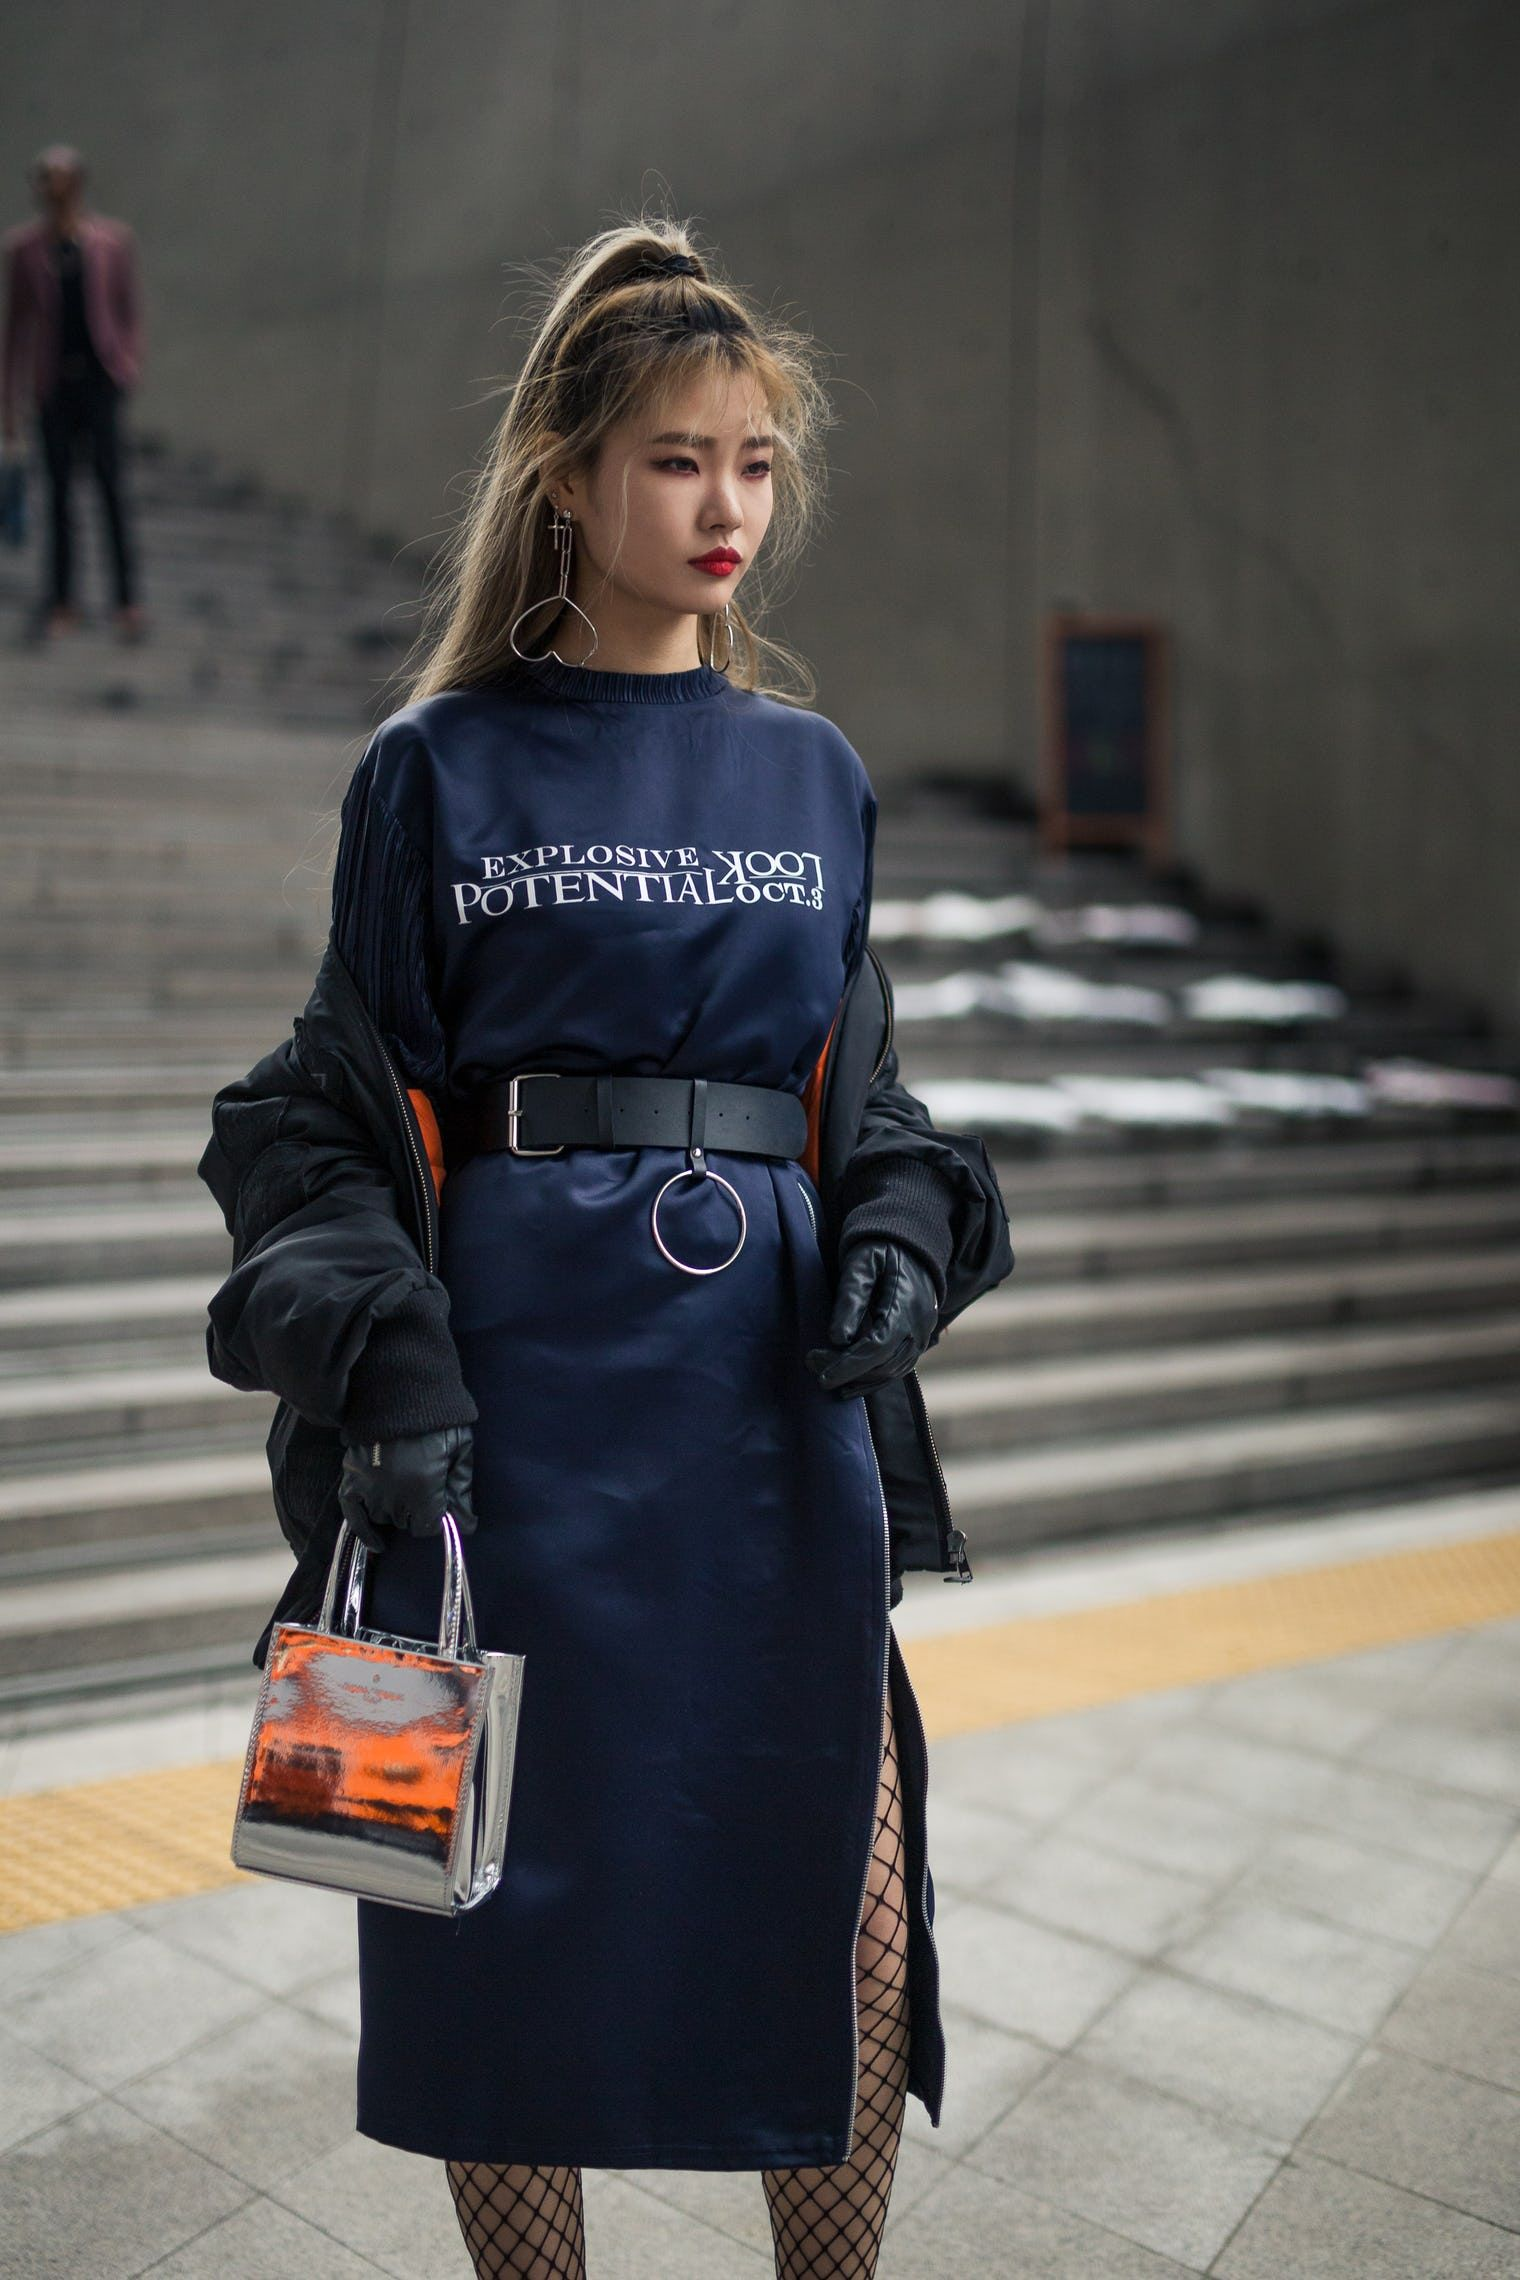 42 Seoul Fashion Week Street Style Pics That Go The Distance